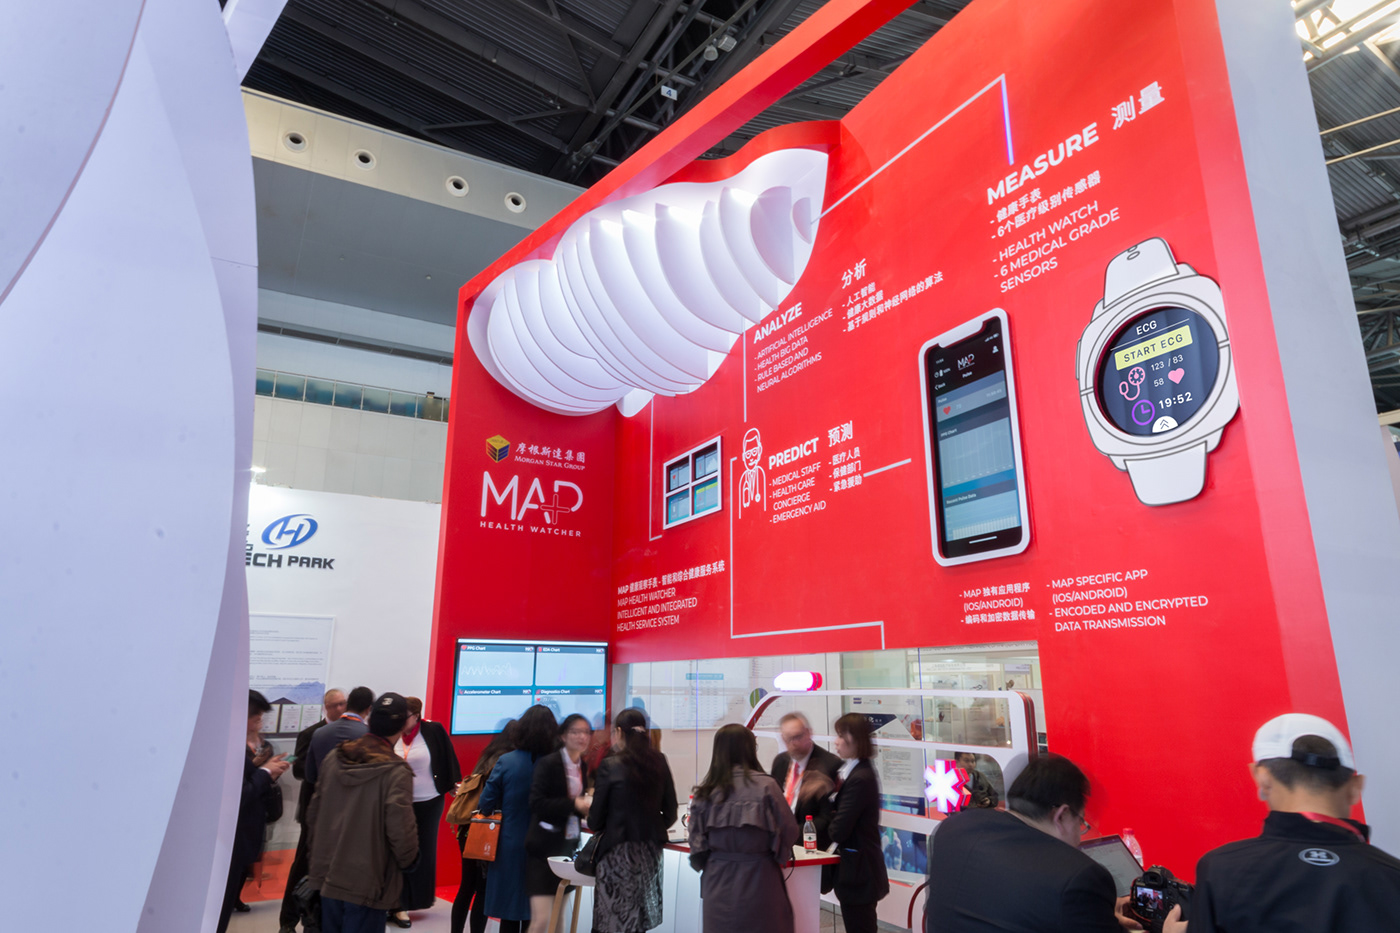 standdesign waves architecture infographics Exhibition  booth branding  smartwatch china shanghai